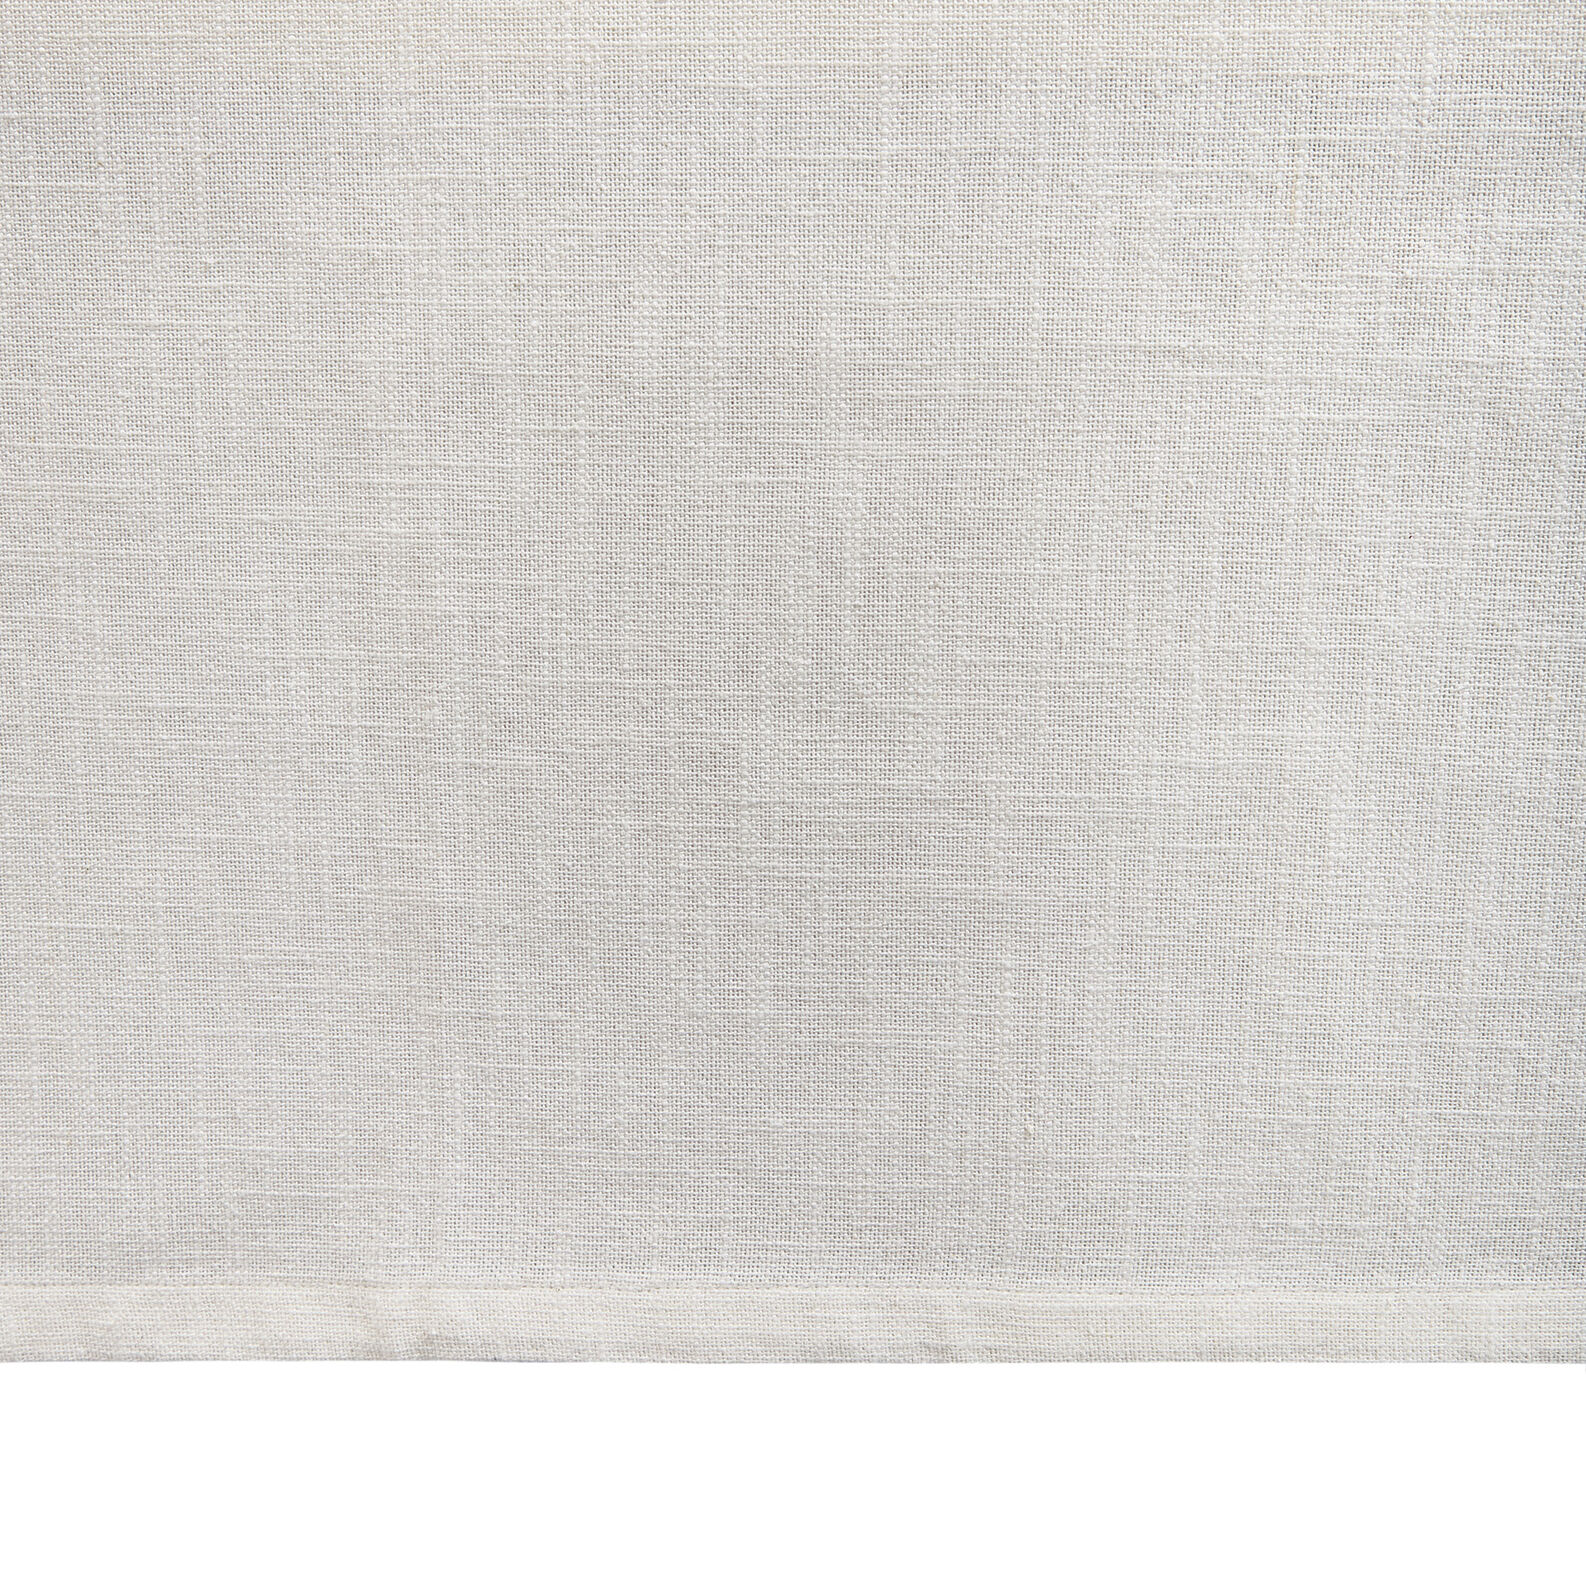 Plain cotton slub table cloth